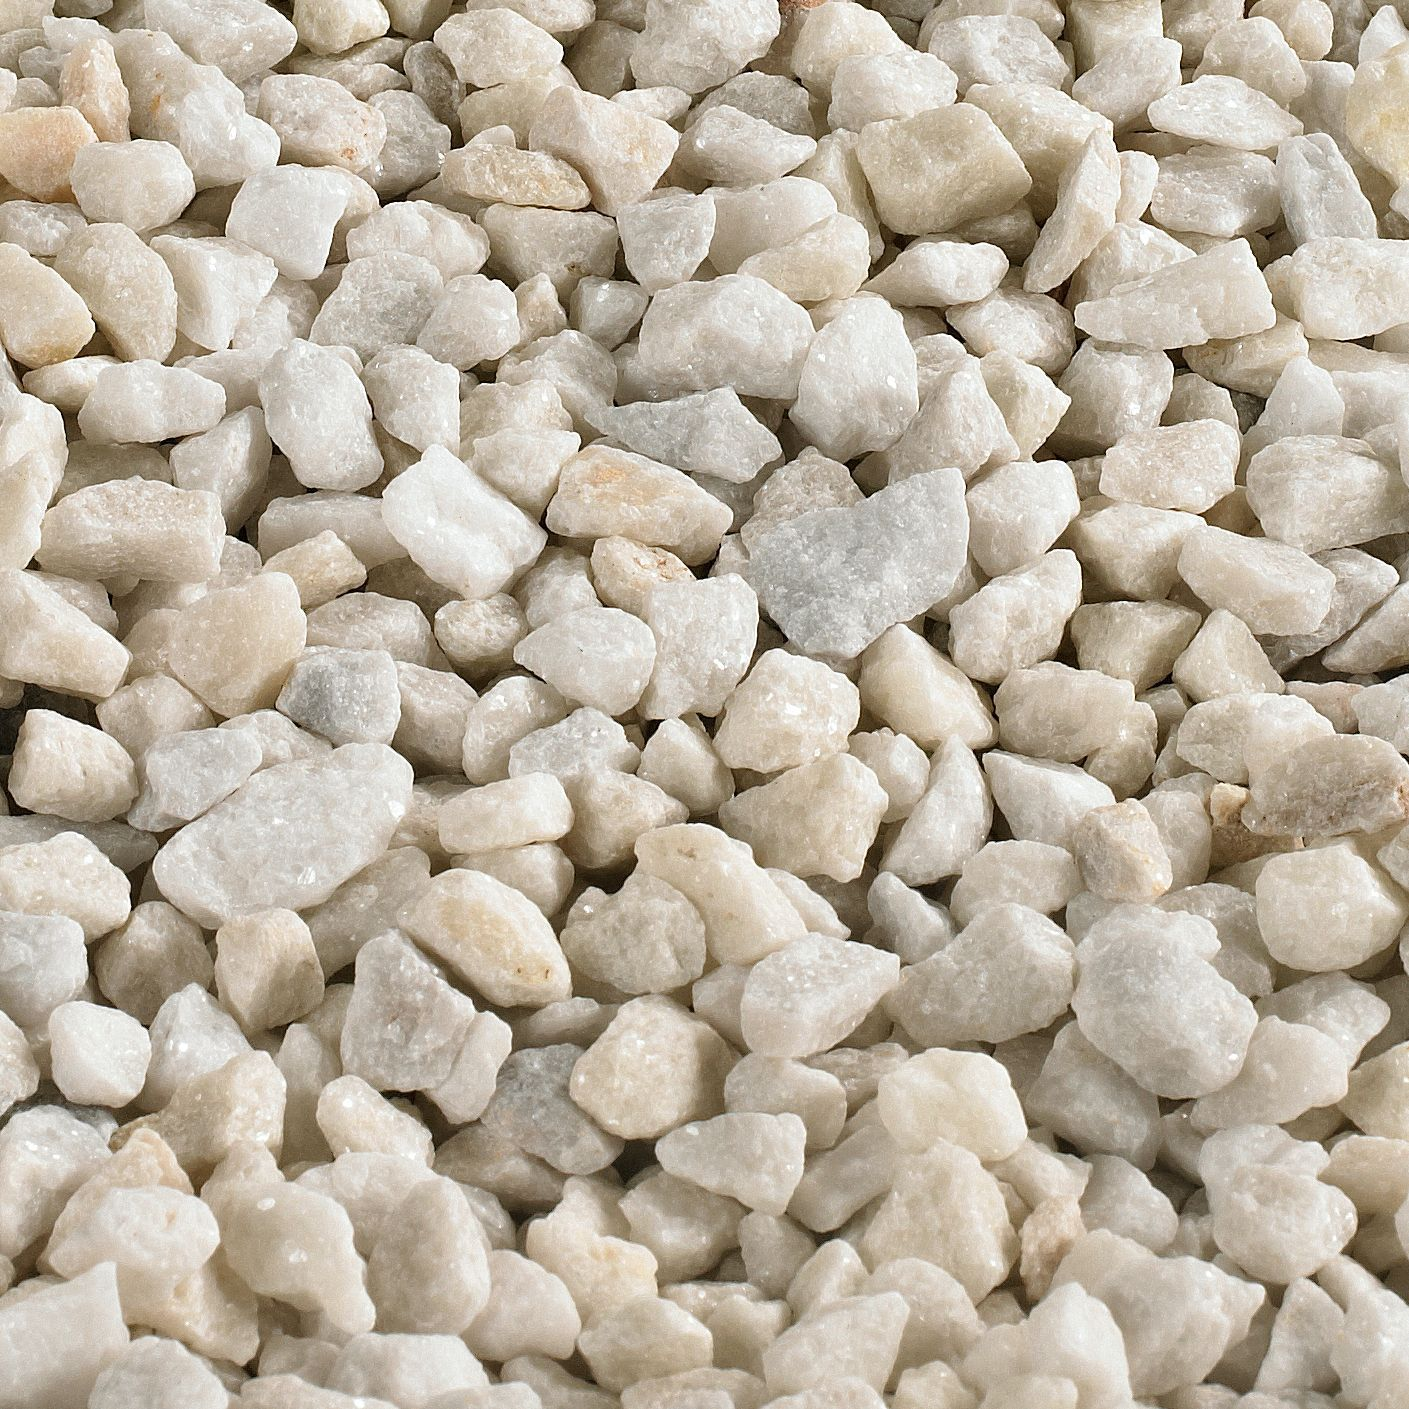 Bulk Decorative Stones : White spar decorative stone bulk bag departments diy